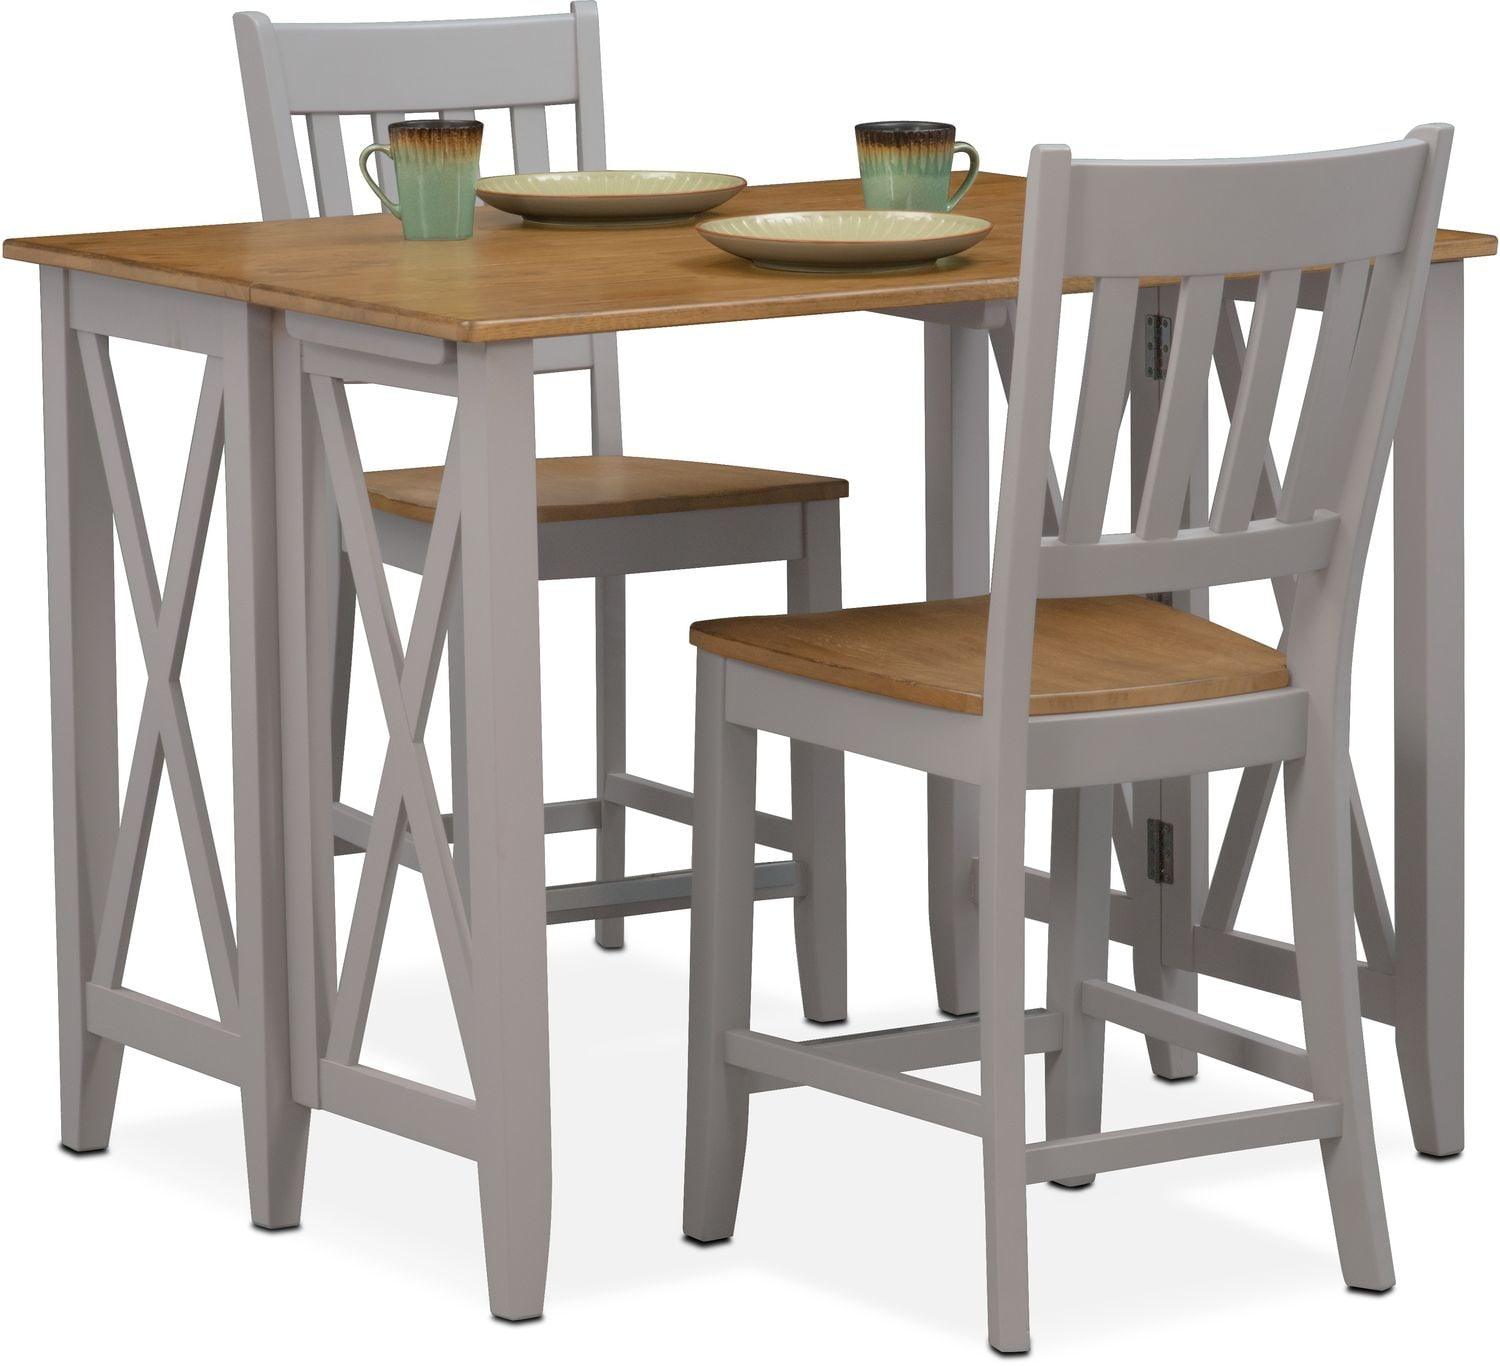 Bar Height Dining Chairs Nantucket Breakfast Bar And 2 Counter Height Slat Back